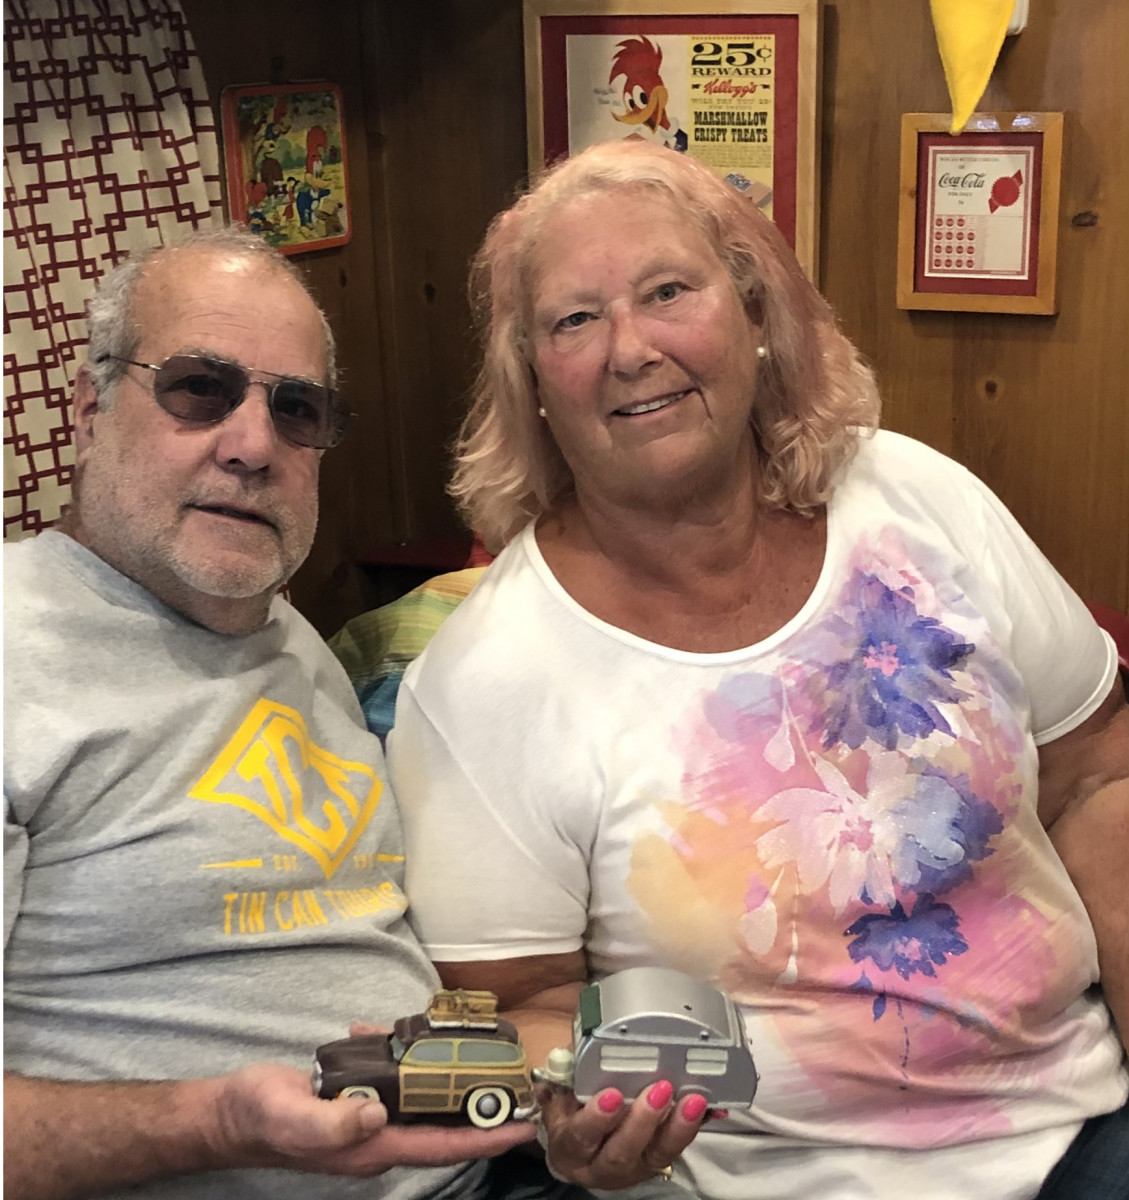 While they might not agree on which cola is the best, Rick and Bonnie Cook do agree vintage travel trailers suit their taste just fine.